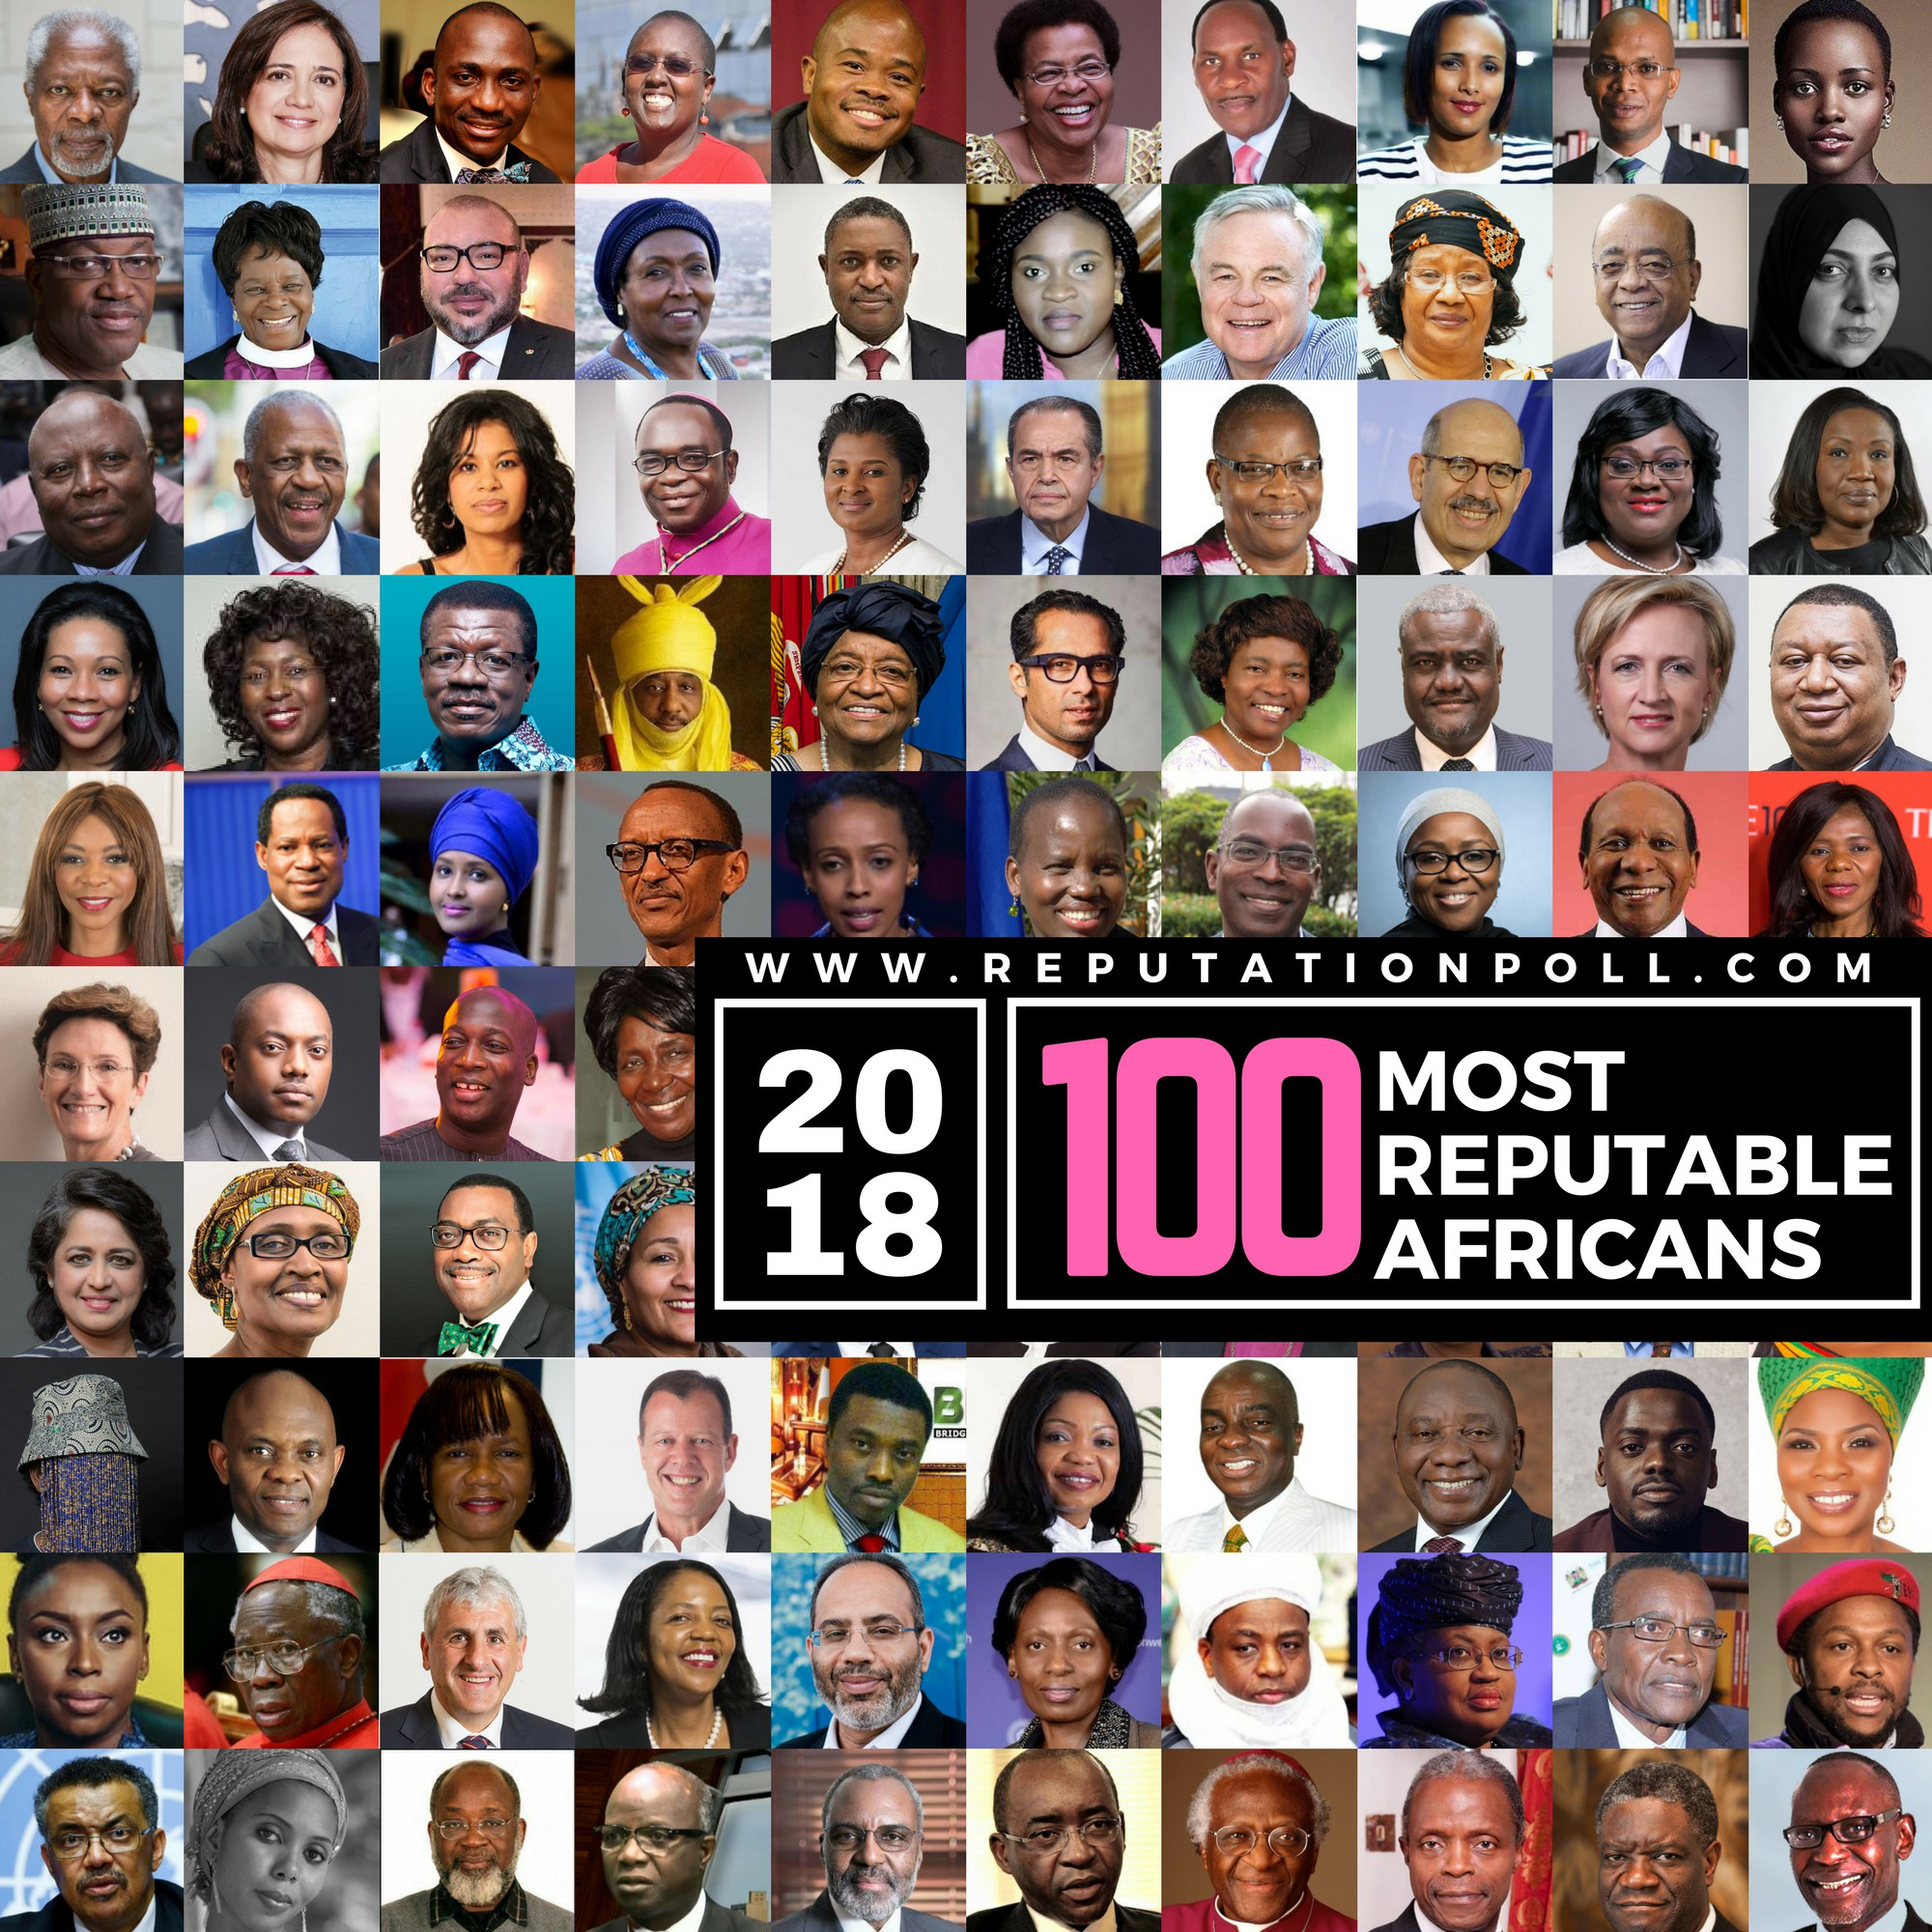 Martin Amidu, Mensa Otabil, Kofi Annan make Reputation Poll's 2018 100 Most Reputable Africans